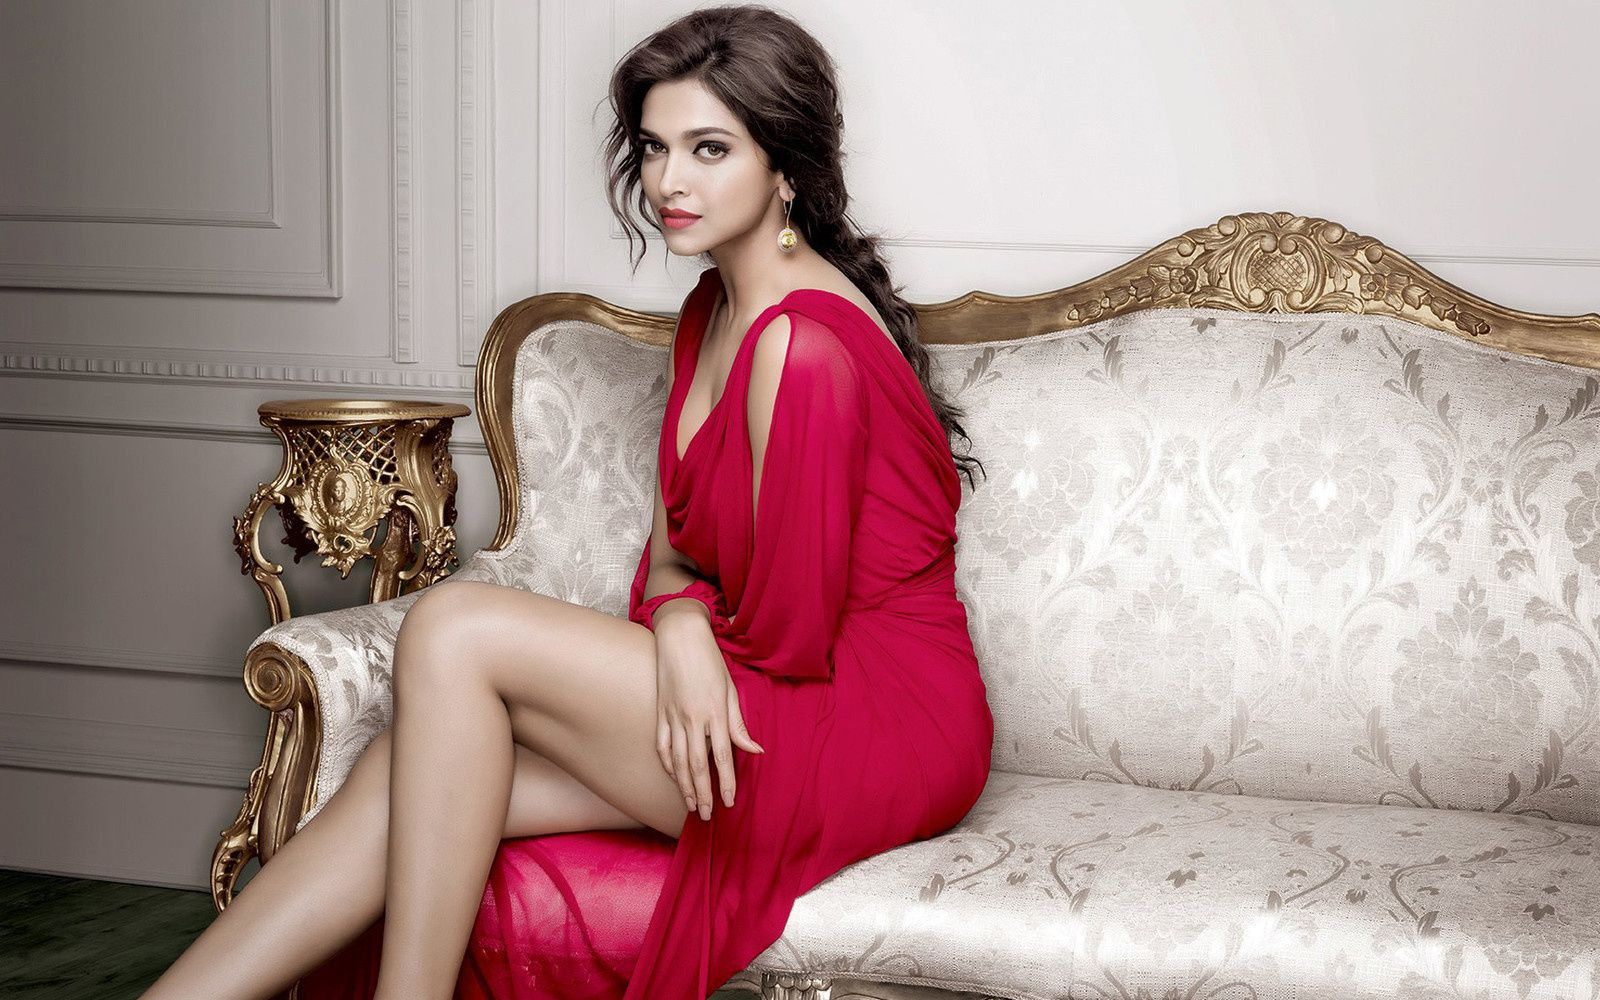 Indian model and actress